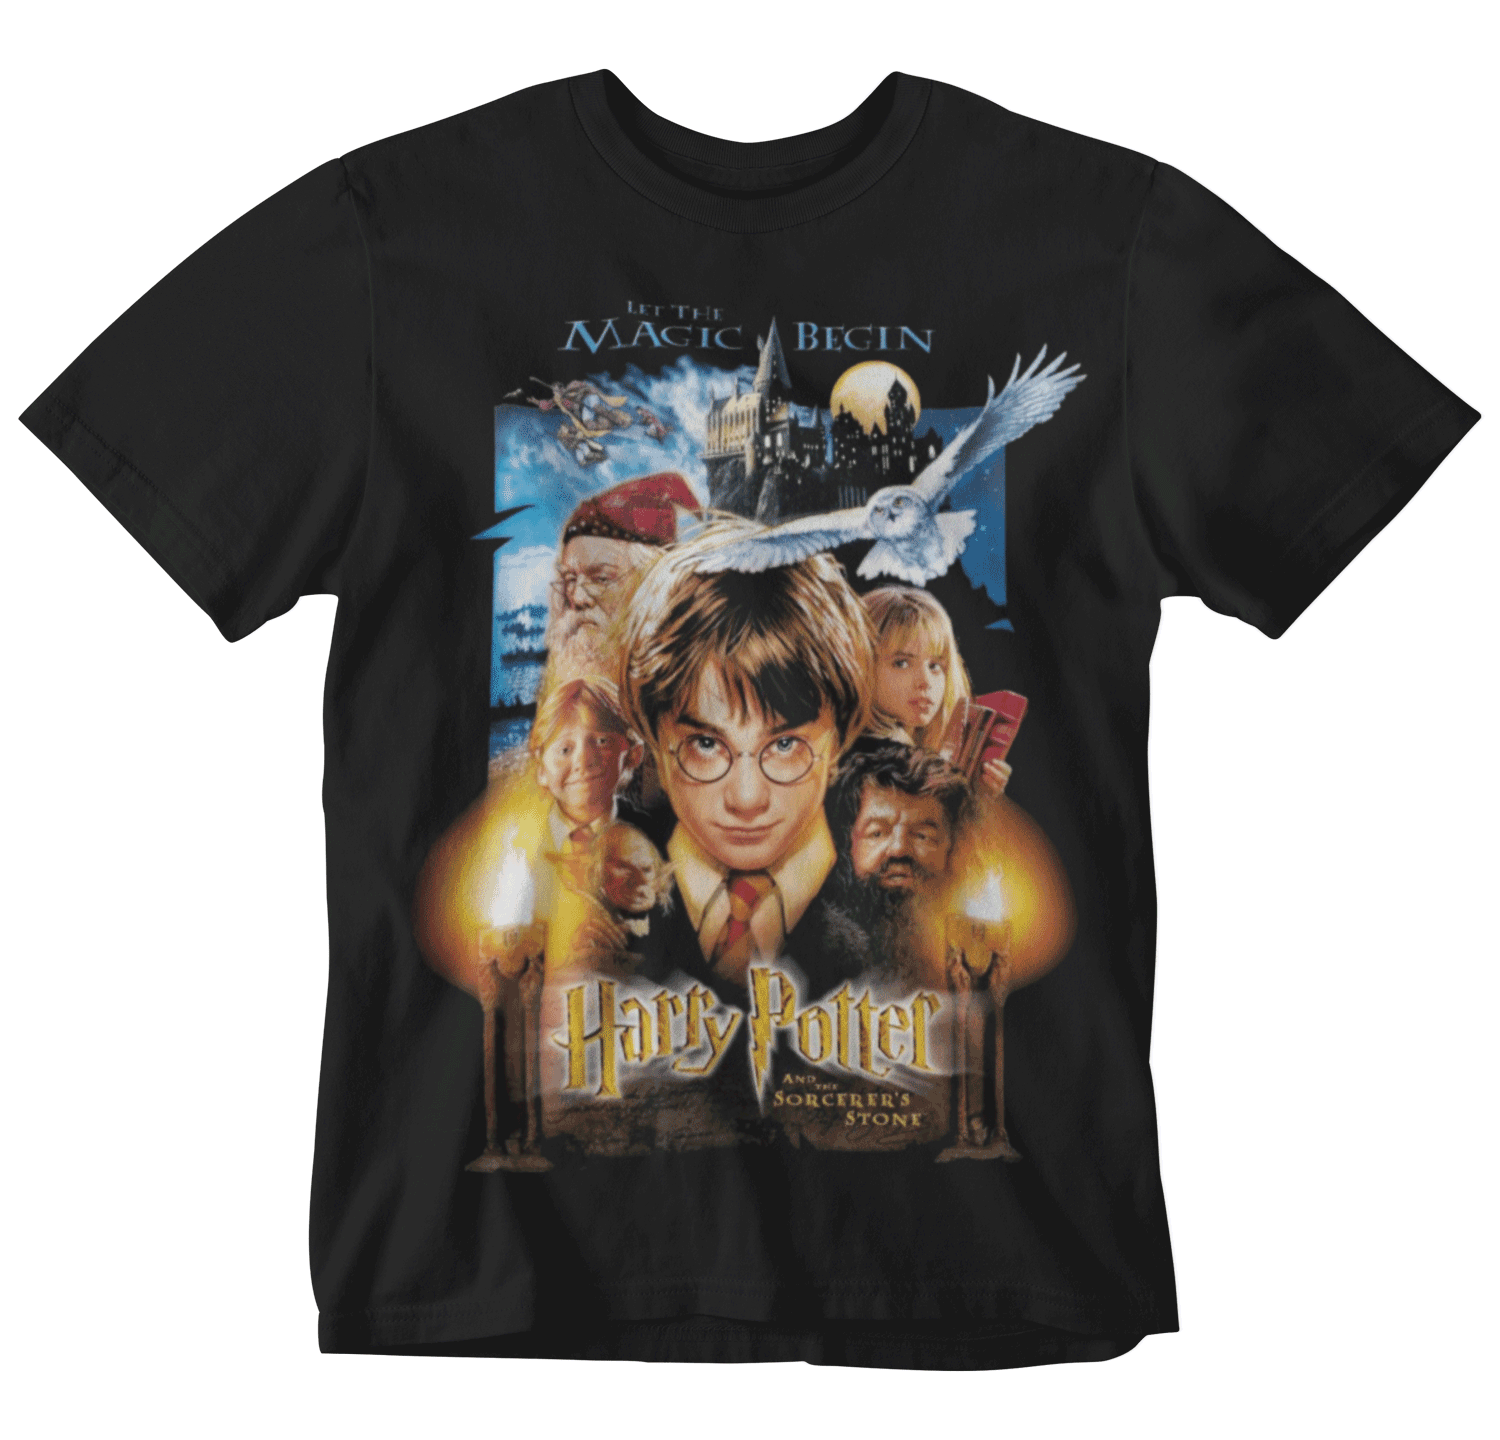 Harry Potter - Philosopher's Stone Black Tee